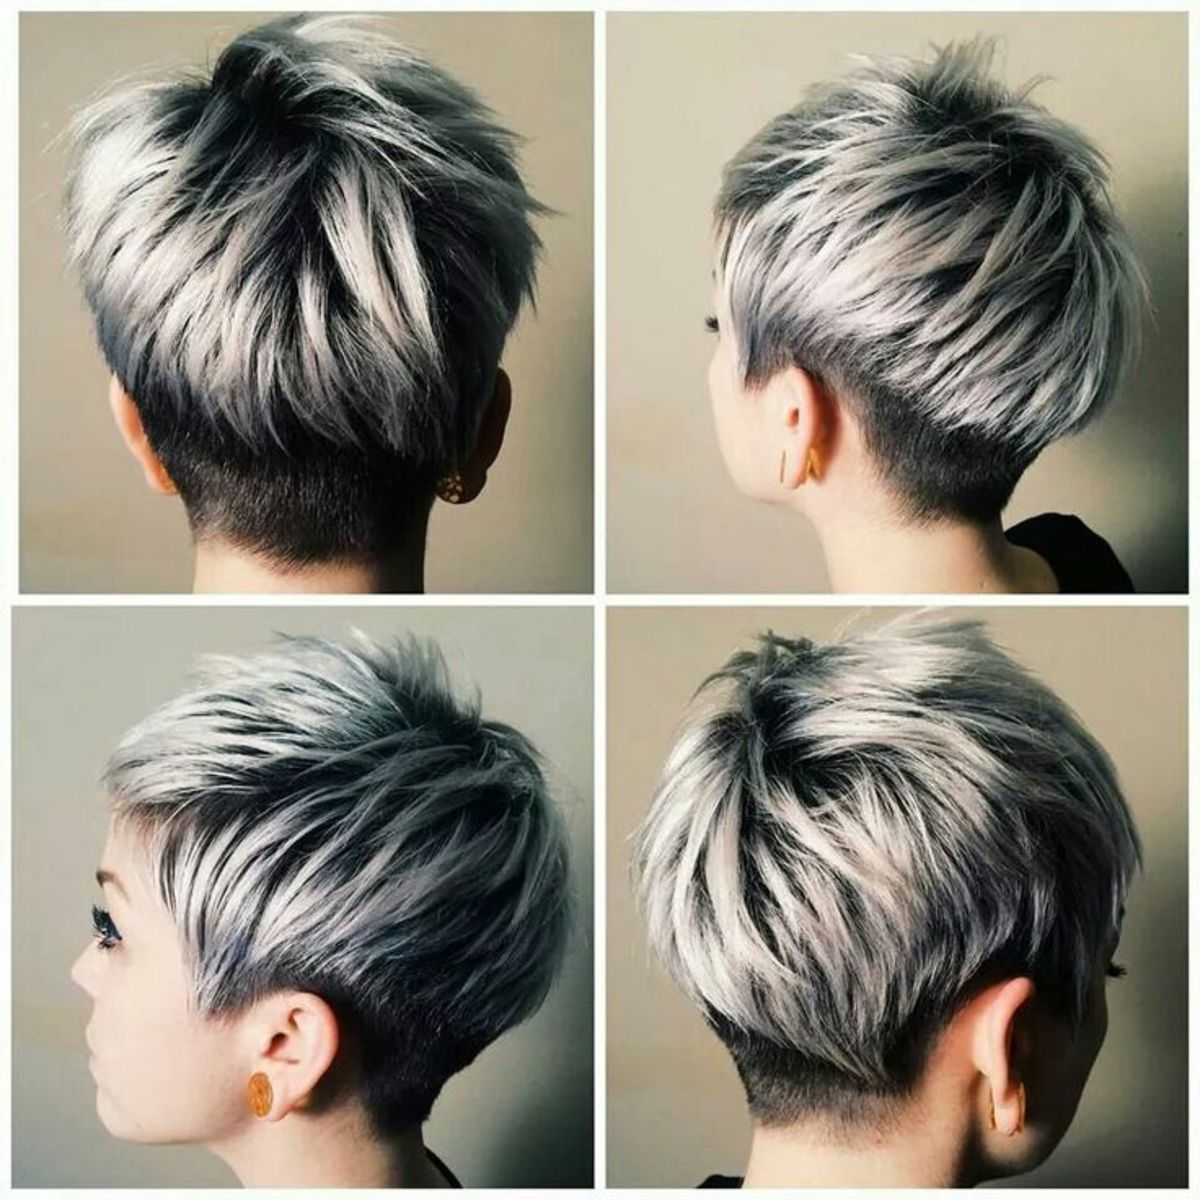 Diy hair 8 ways to rock gray hair bellatory 2 solutioingenieria